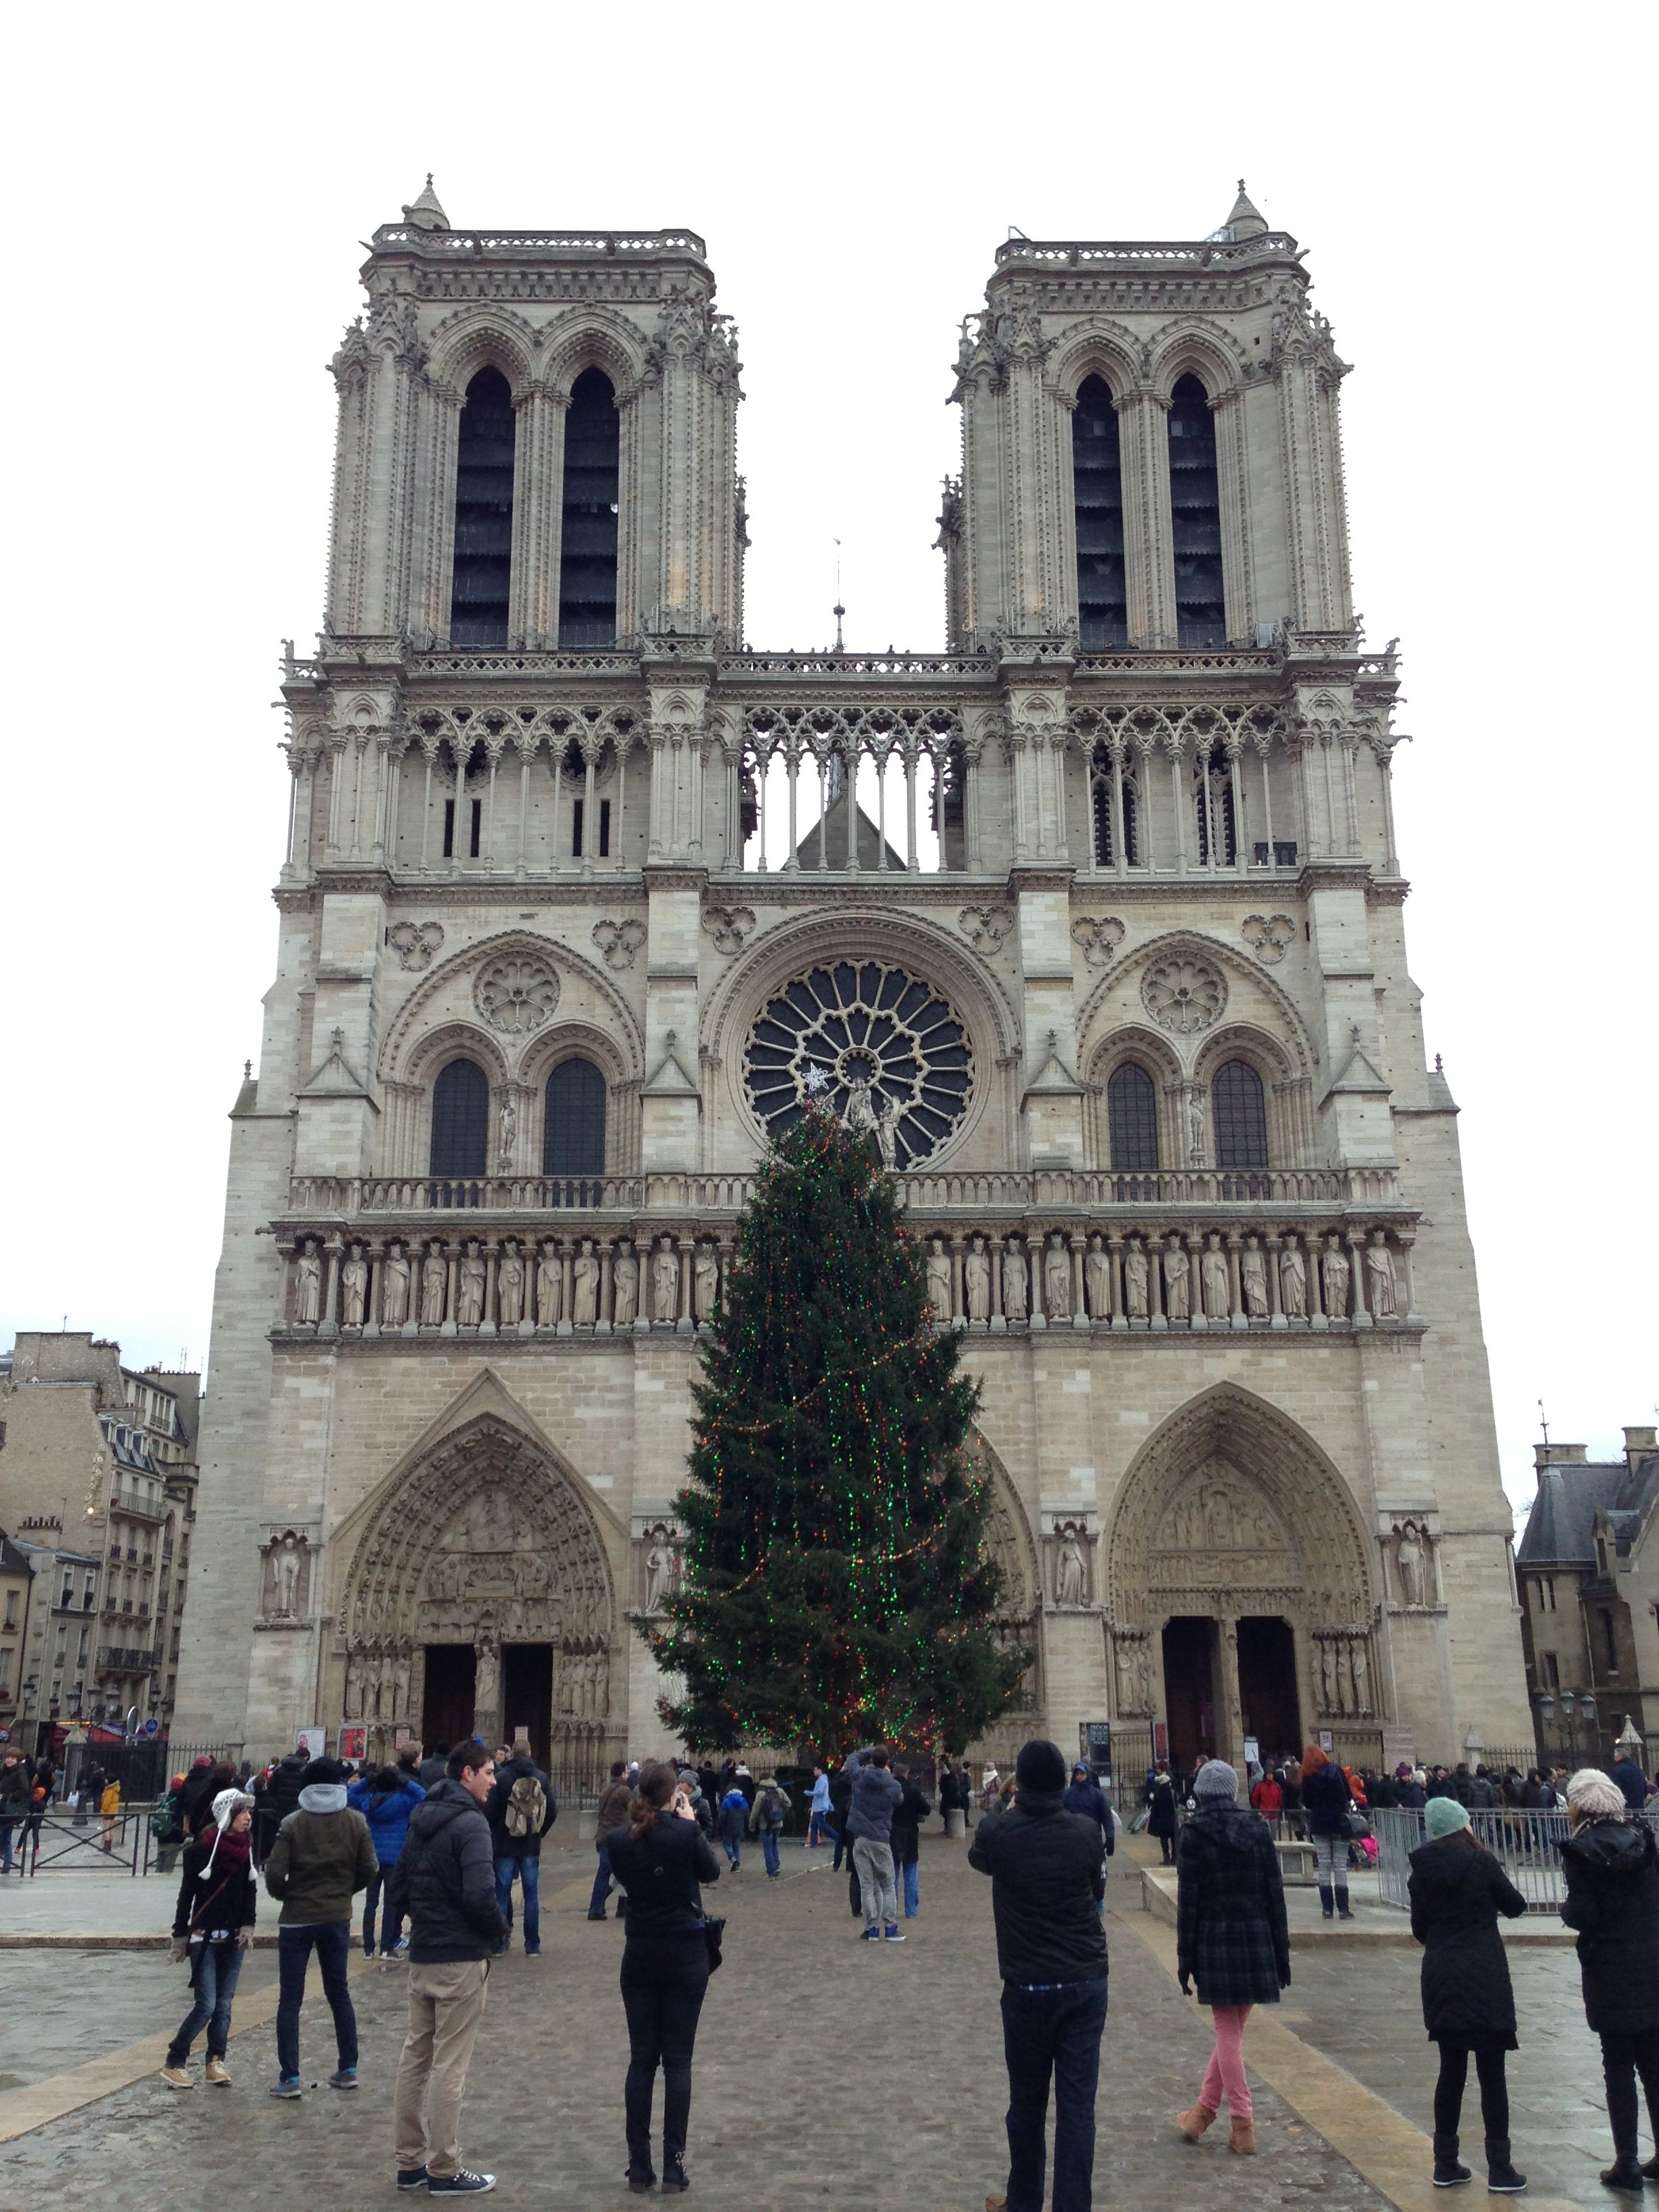 File:Notre dame at Christmas 2.jpg - Wikimedia Commons